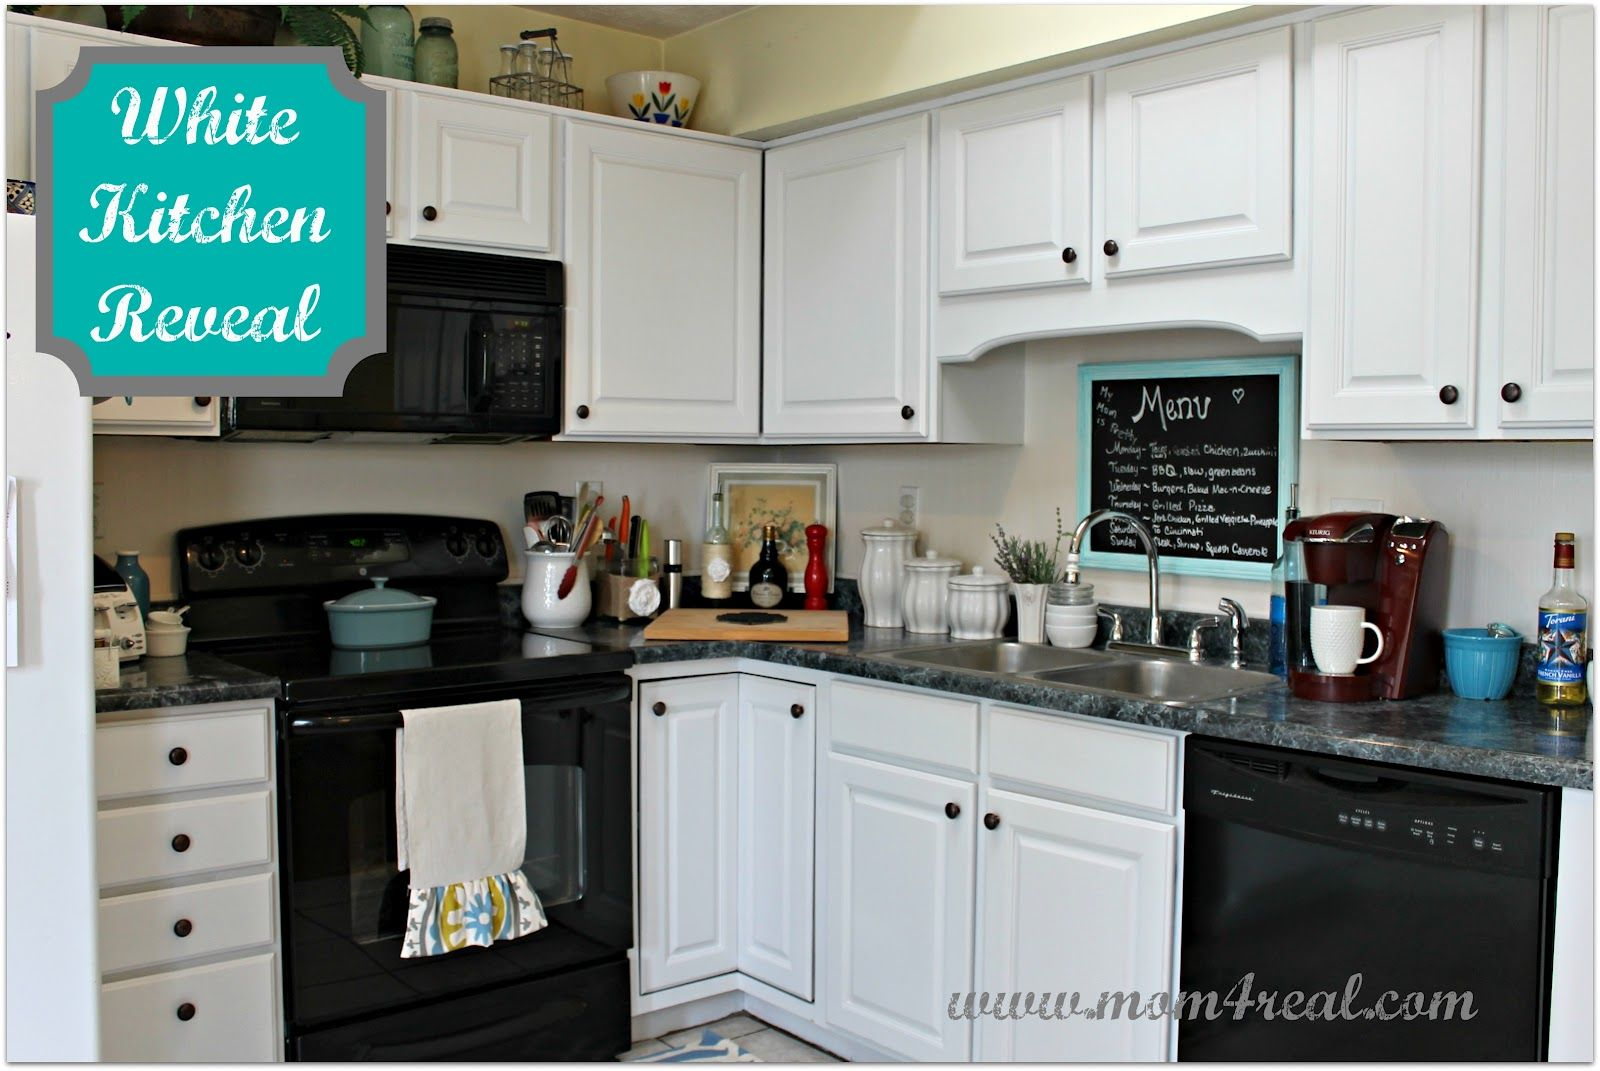 All White Kitchens With White Appliances White Kitchen Reveal A Before And After Black Appliances